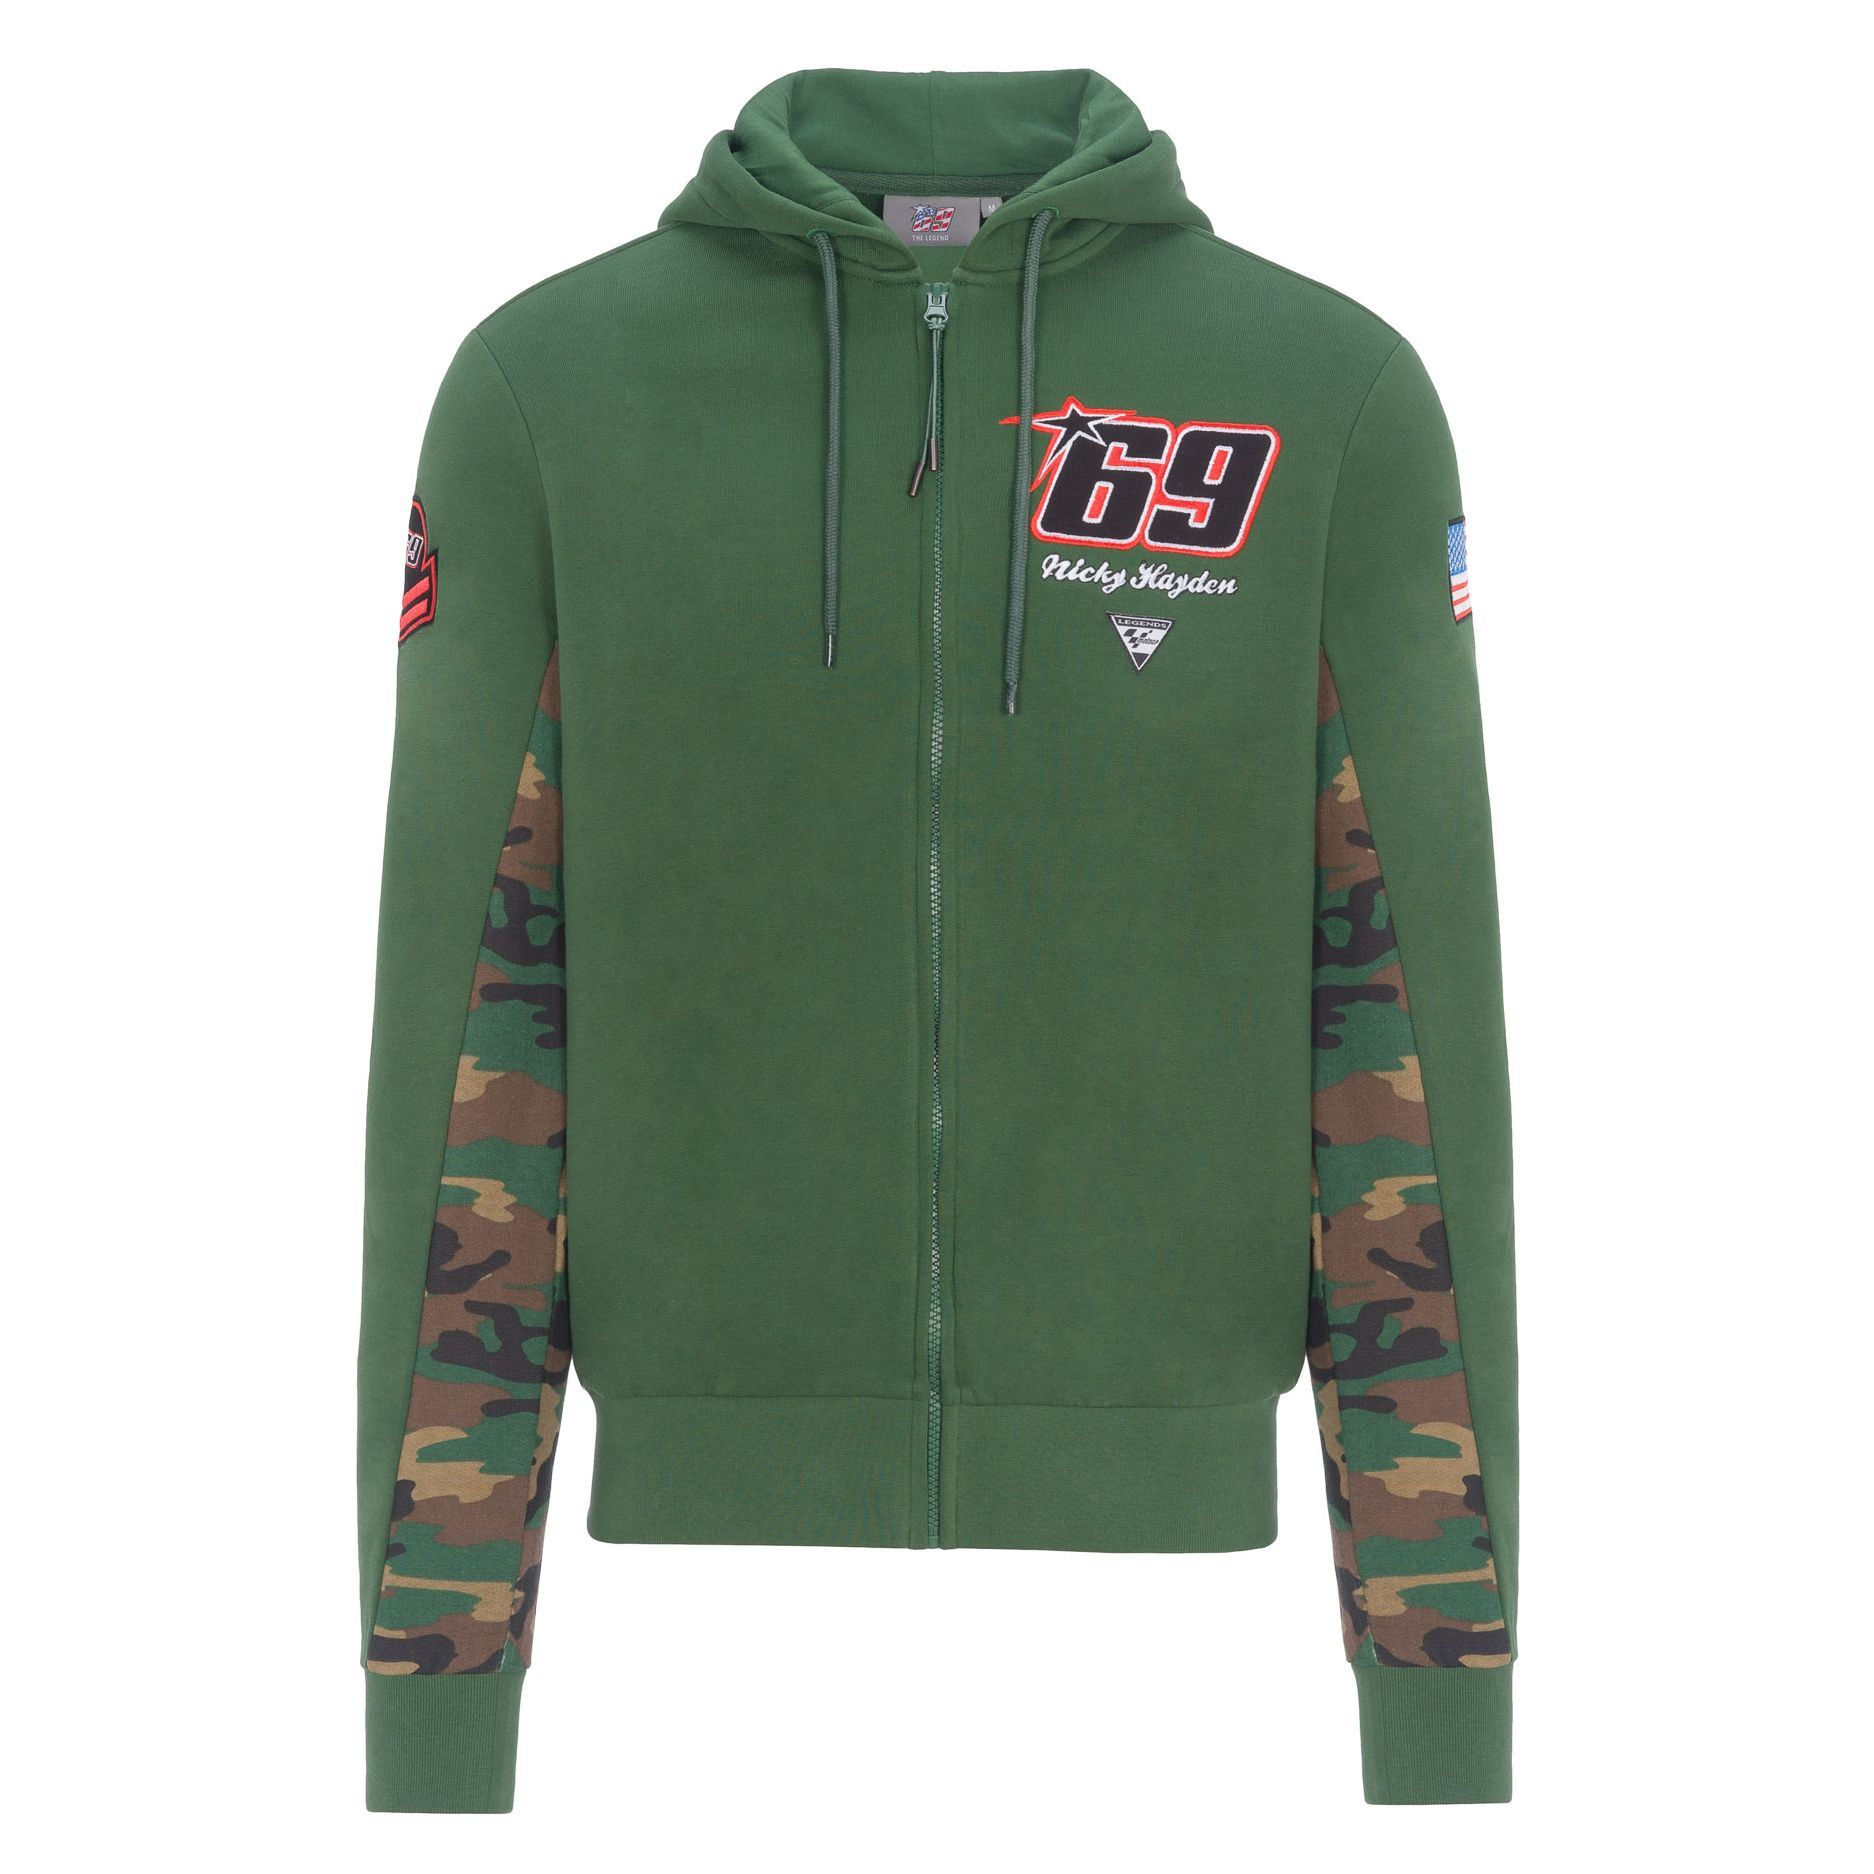 Felpa GP 69 NICKY HAYDEN ZIPPED